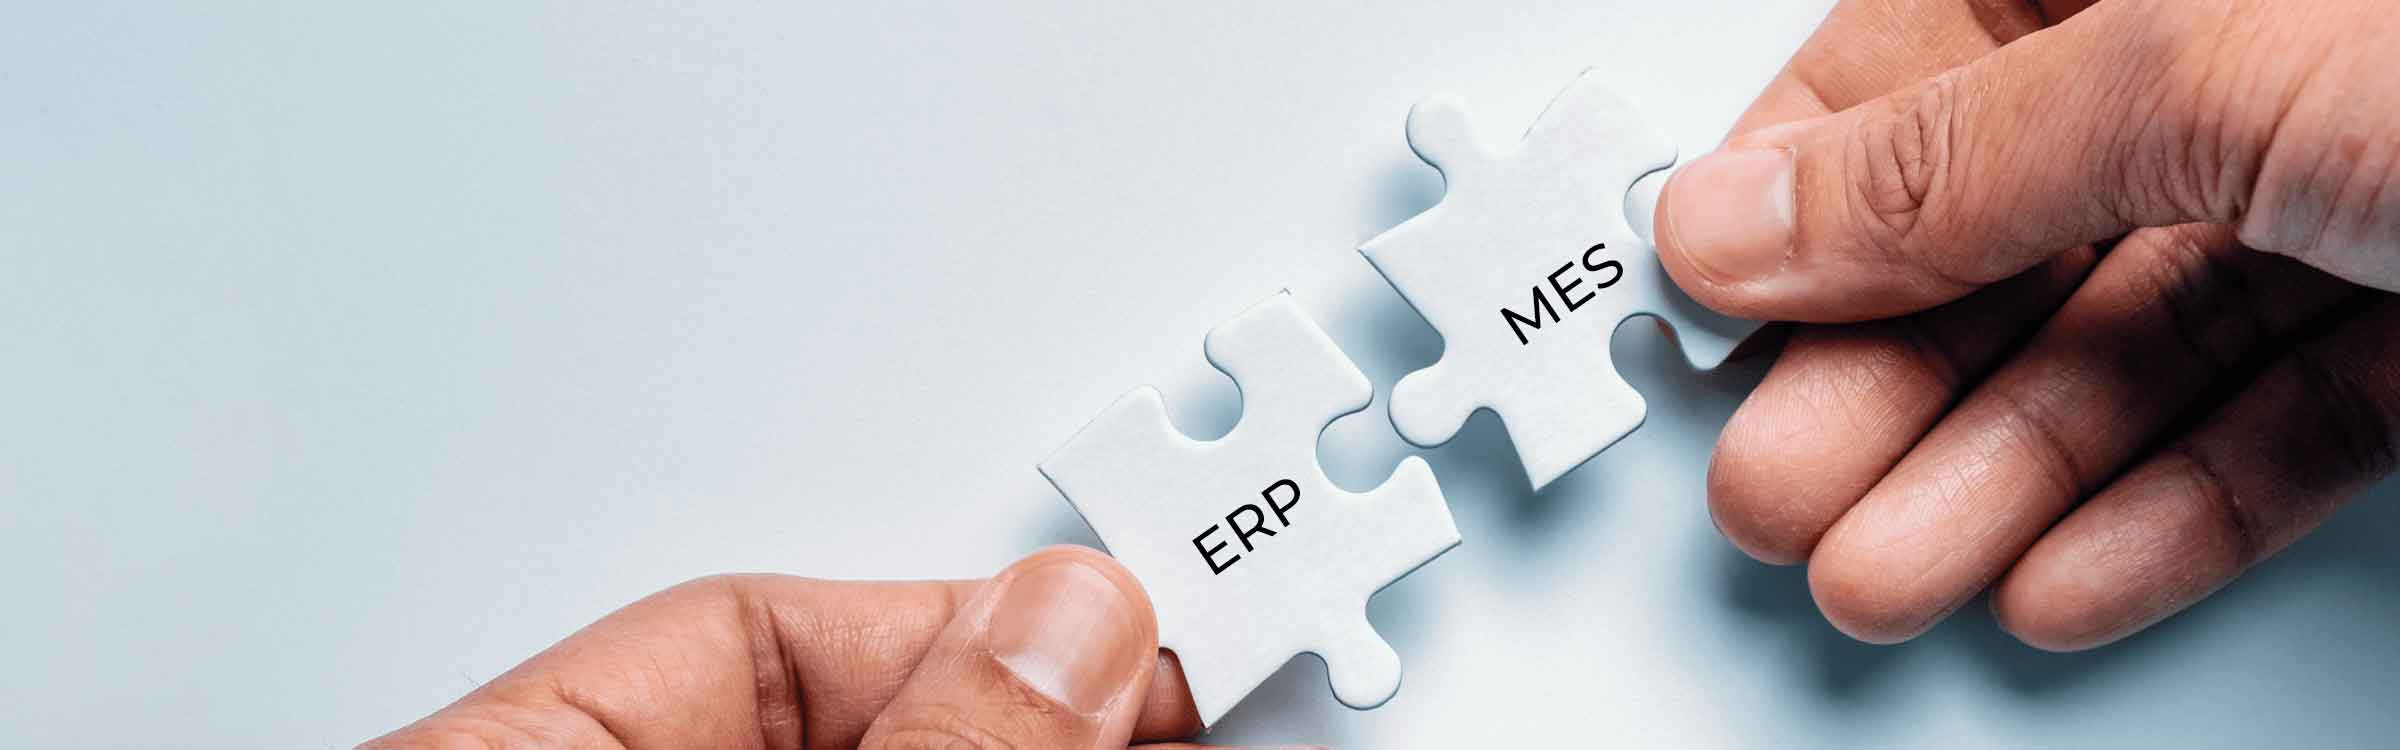 6 reasons why integrating ERP with MES is vital for agile manufacturing